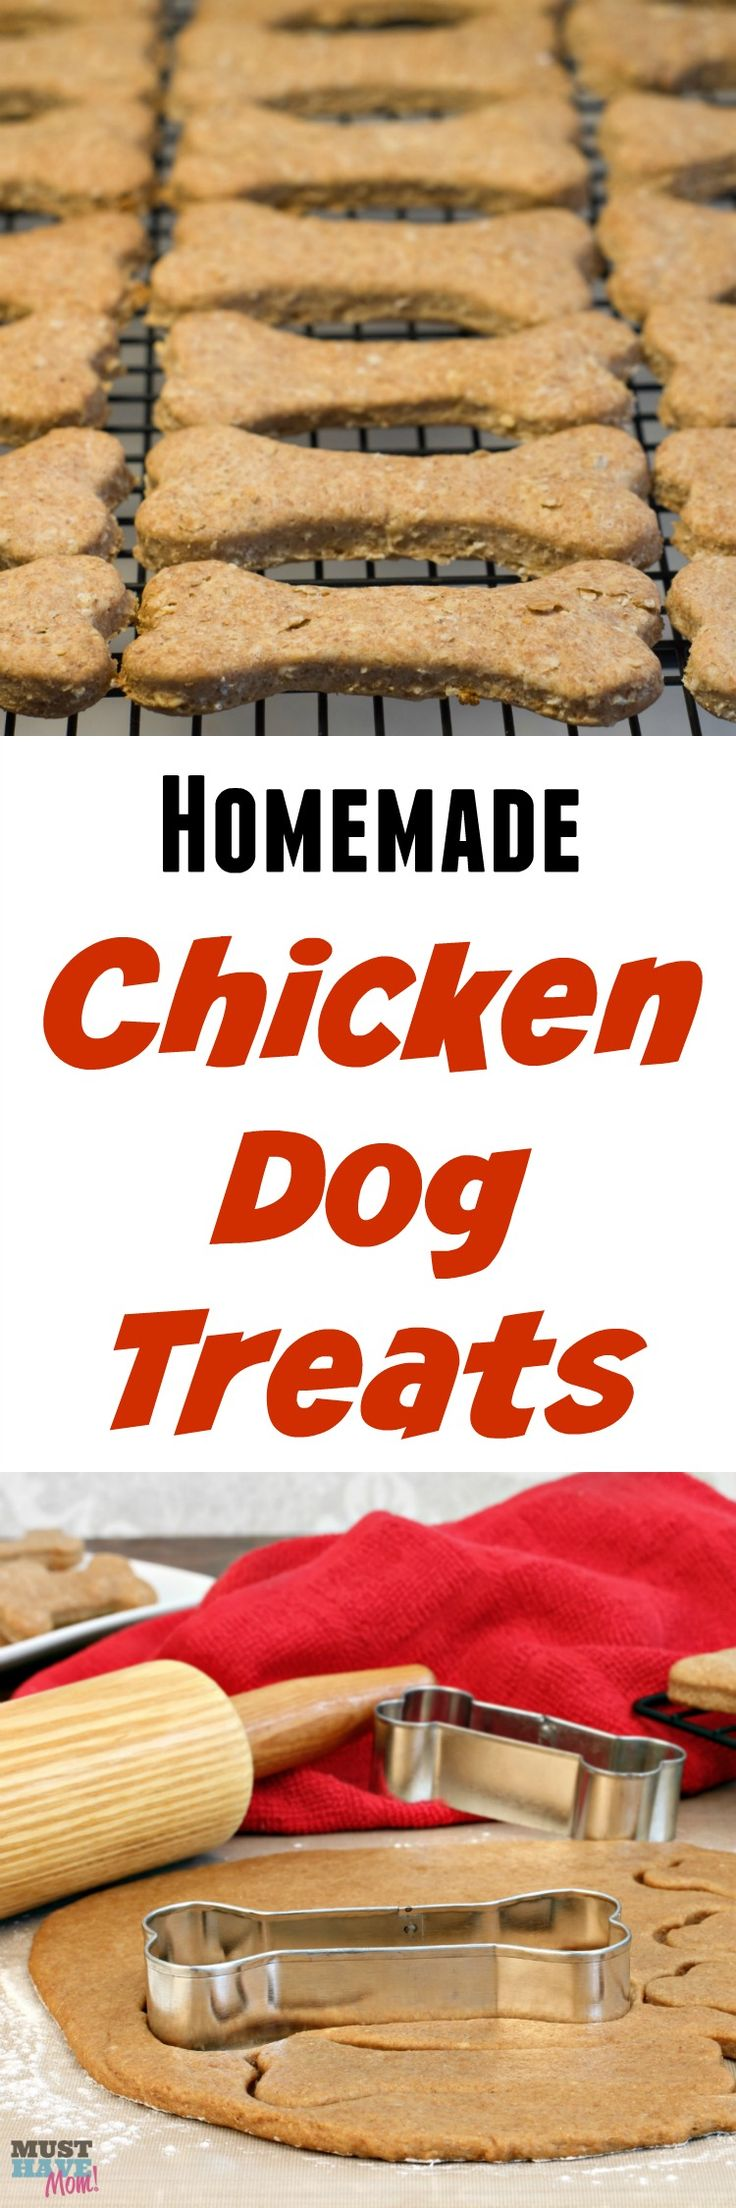 homemade chicken dog treats